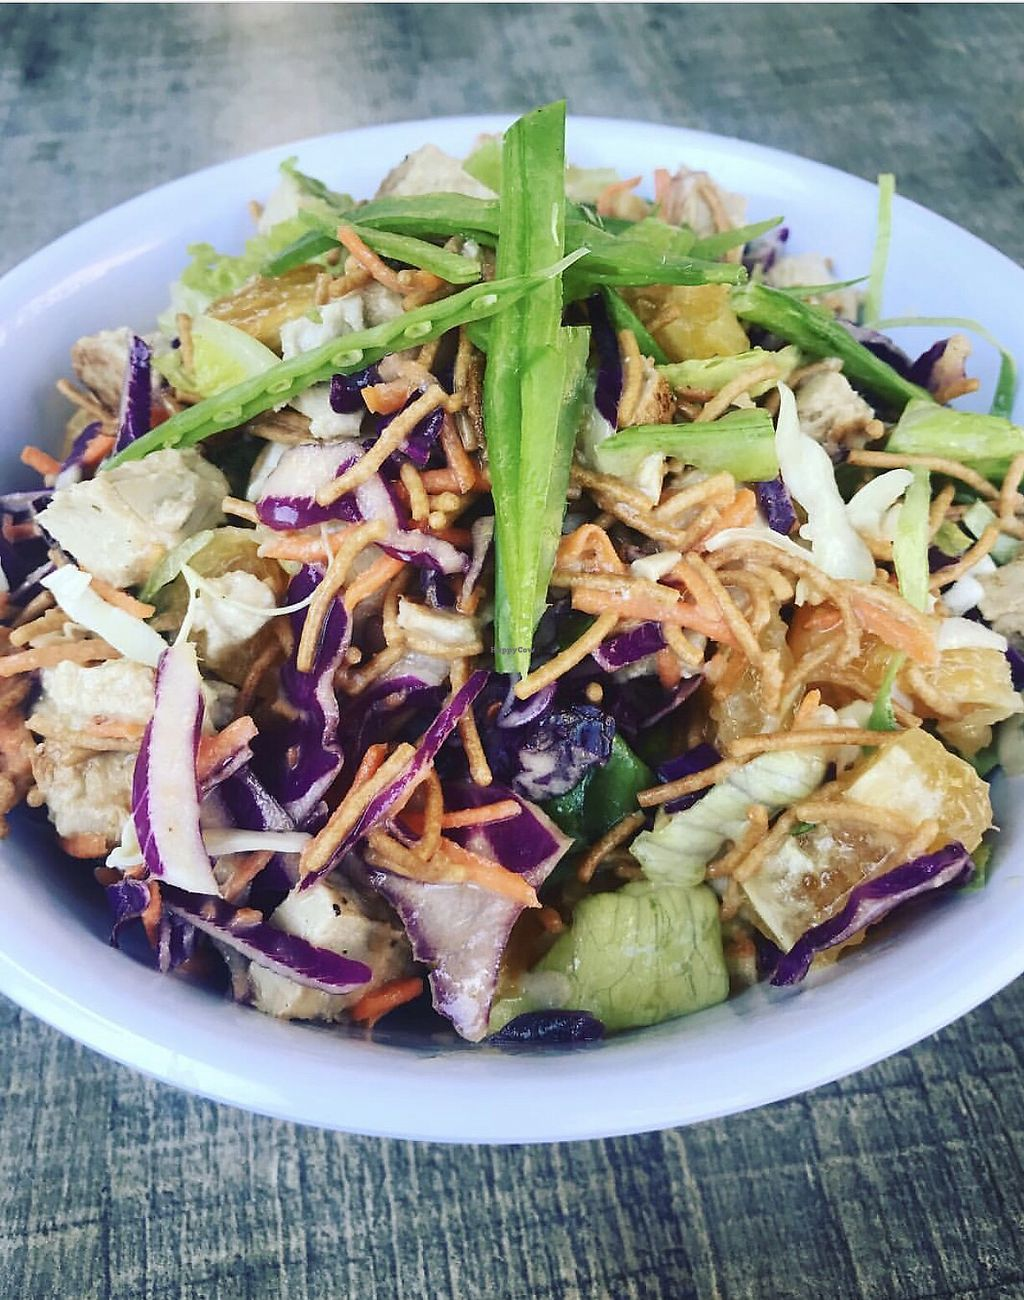 """Photo of Healthy Junk  by <a href=""""/members/profile/SoWo1999"""">SoWo1999</a> <br/>Chinese Chick Salad  <br/> January 14, 2018  - <a href='/contact/abuse/image/34315/346687'>Report</a>"""